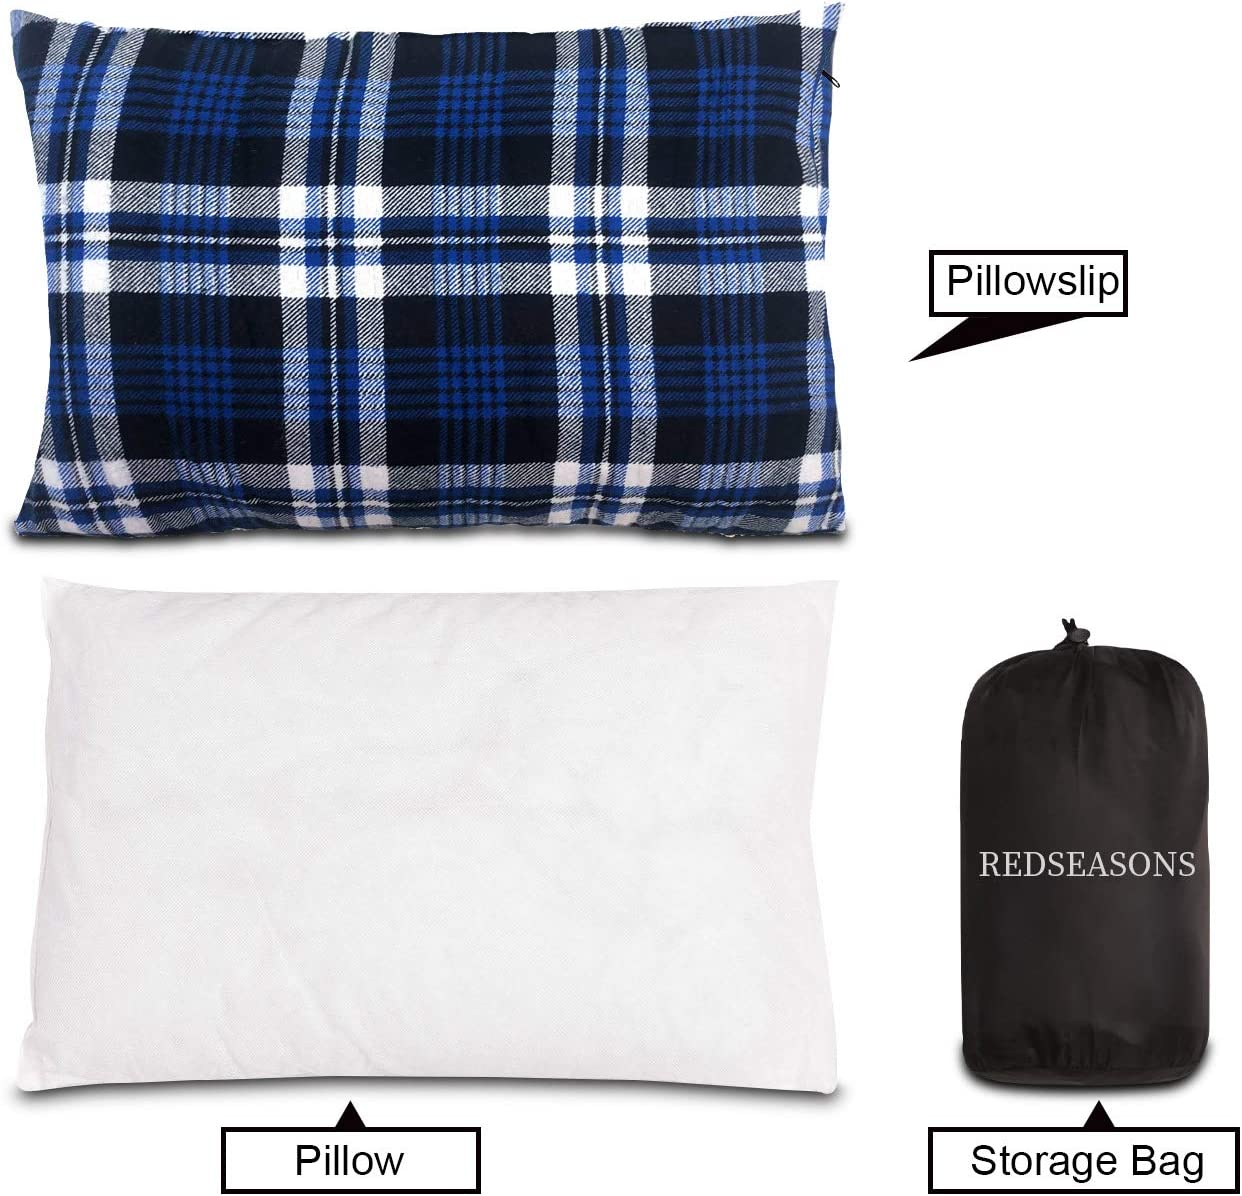 Flannel Travel Pillow,Removable Cover with Storage Bag REDSEASONS Small Camping Pillow Lightweight and Compressible